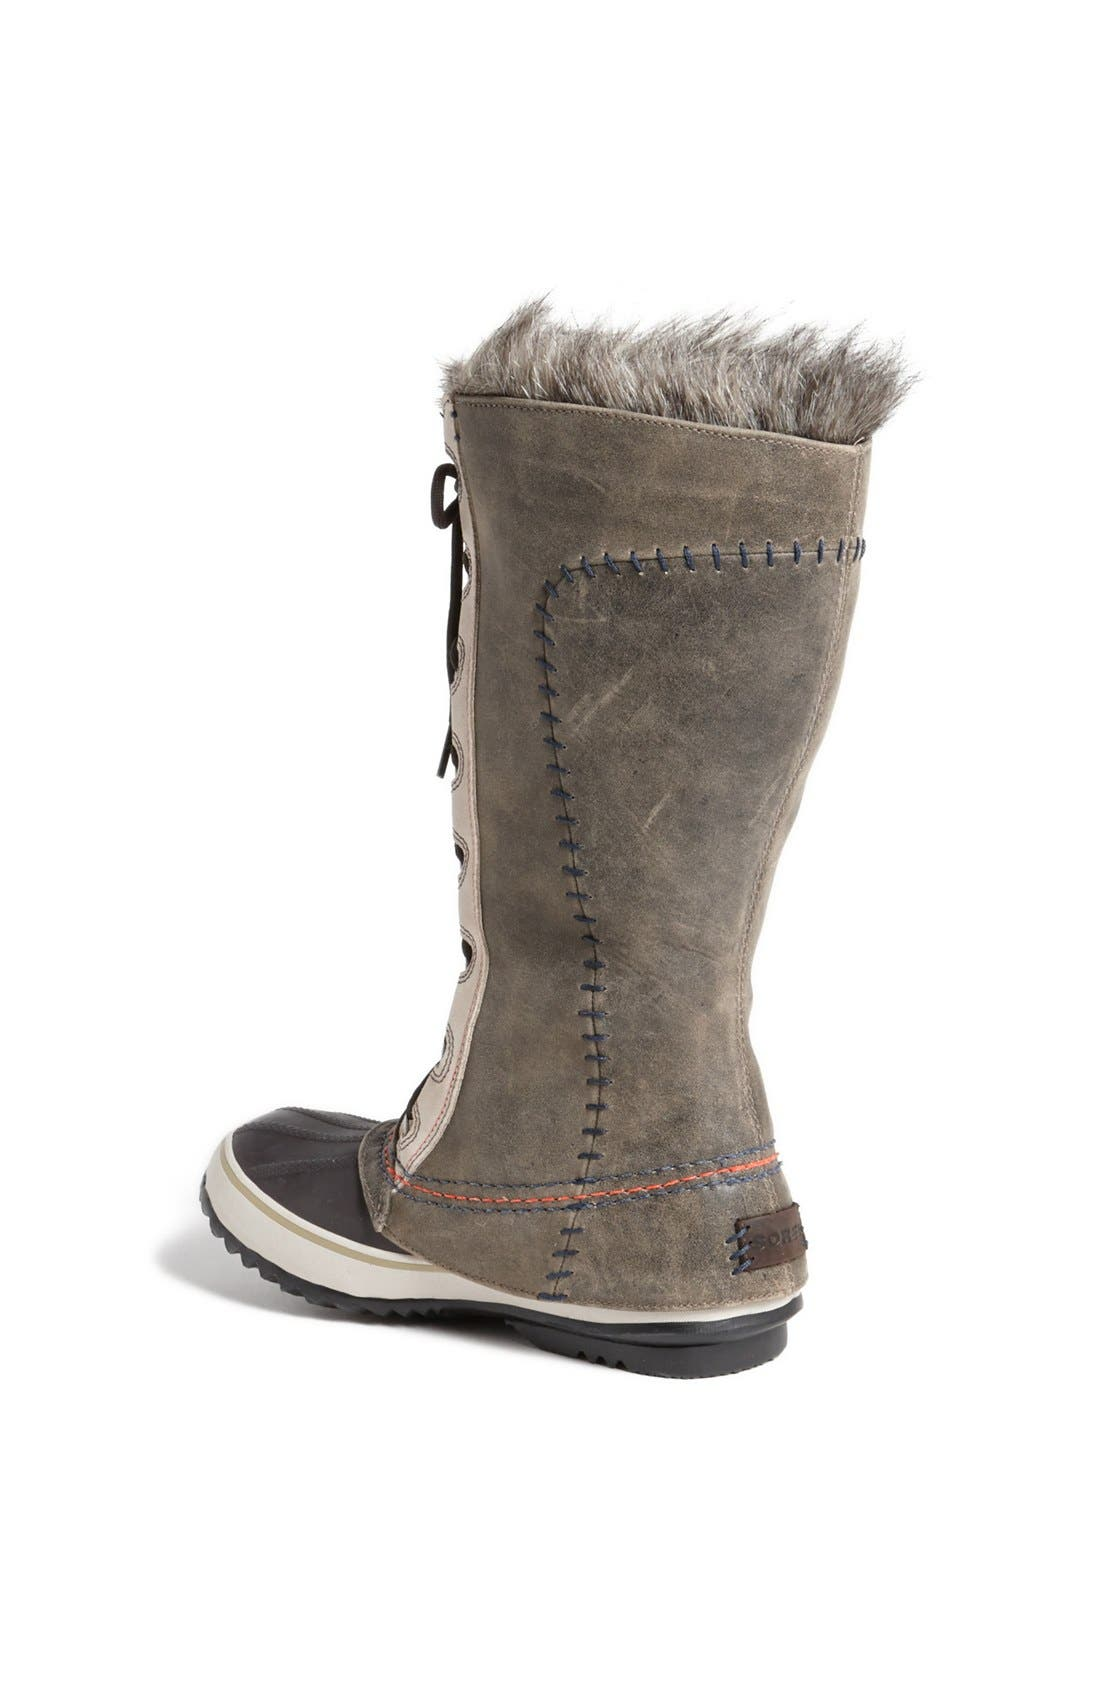 'Cate the Great - Deco' Waterproof Suede Duck Boot,                             Alternate thumbnail 3, color,                             099